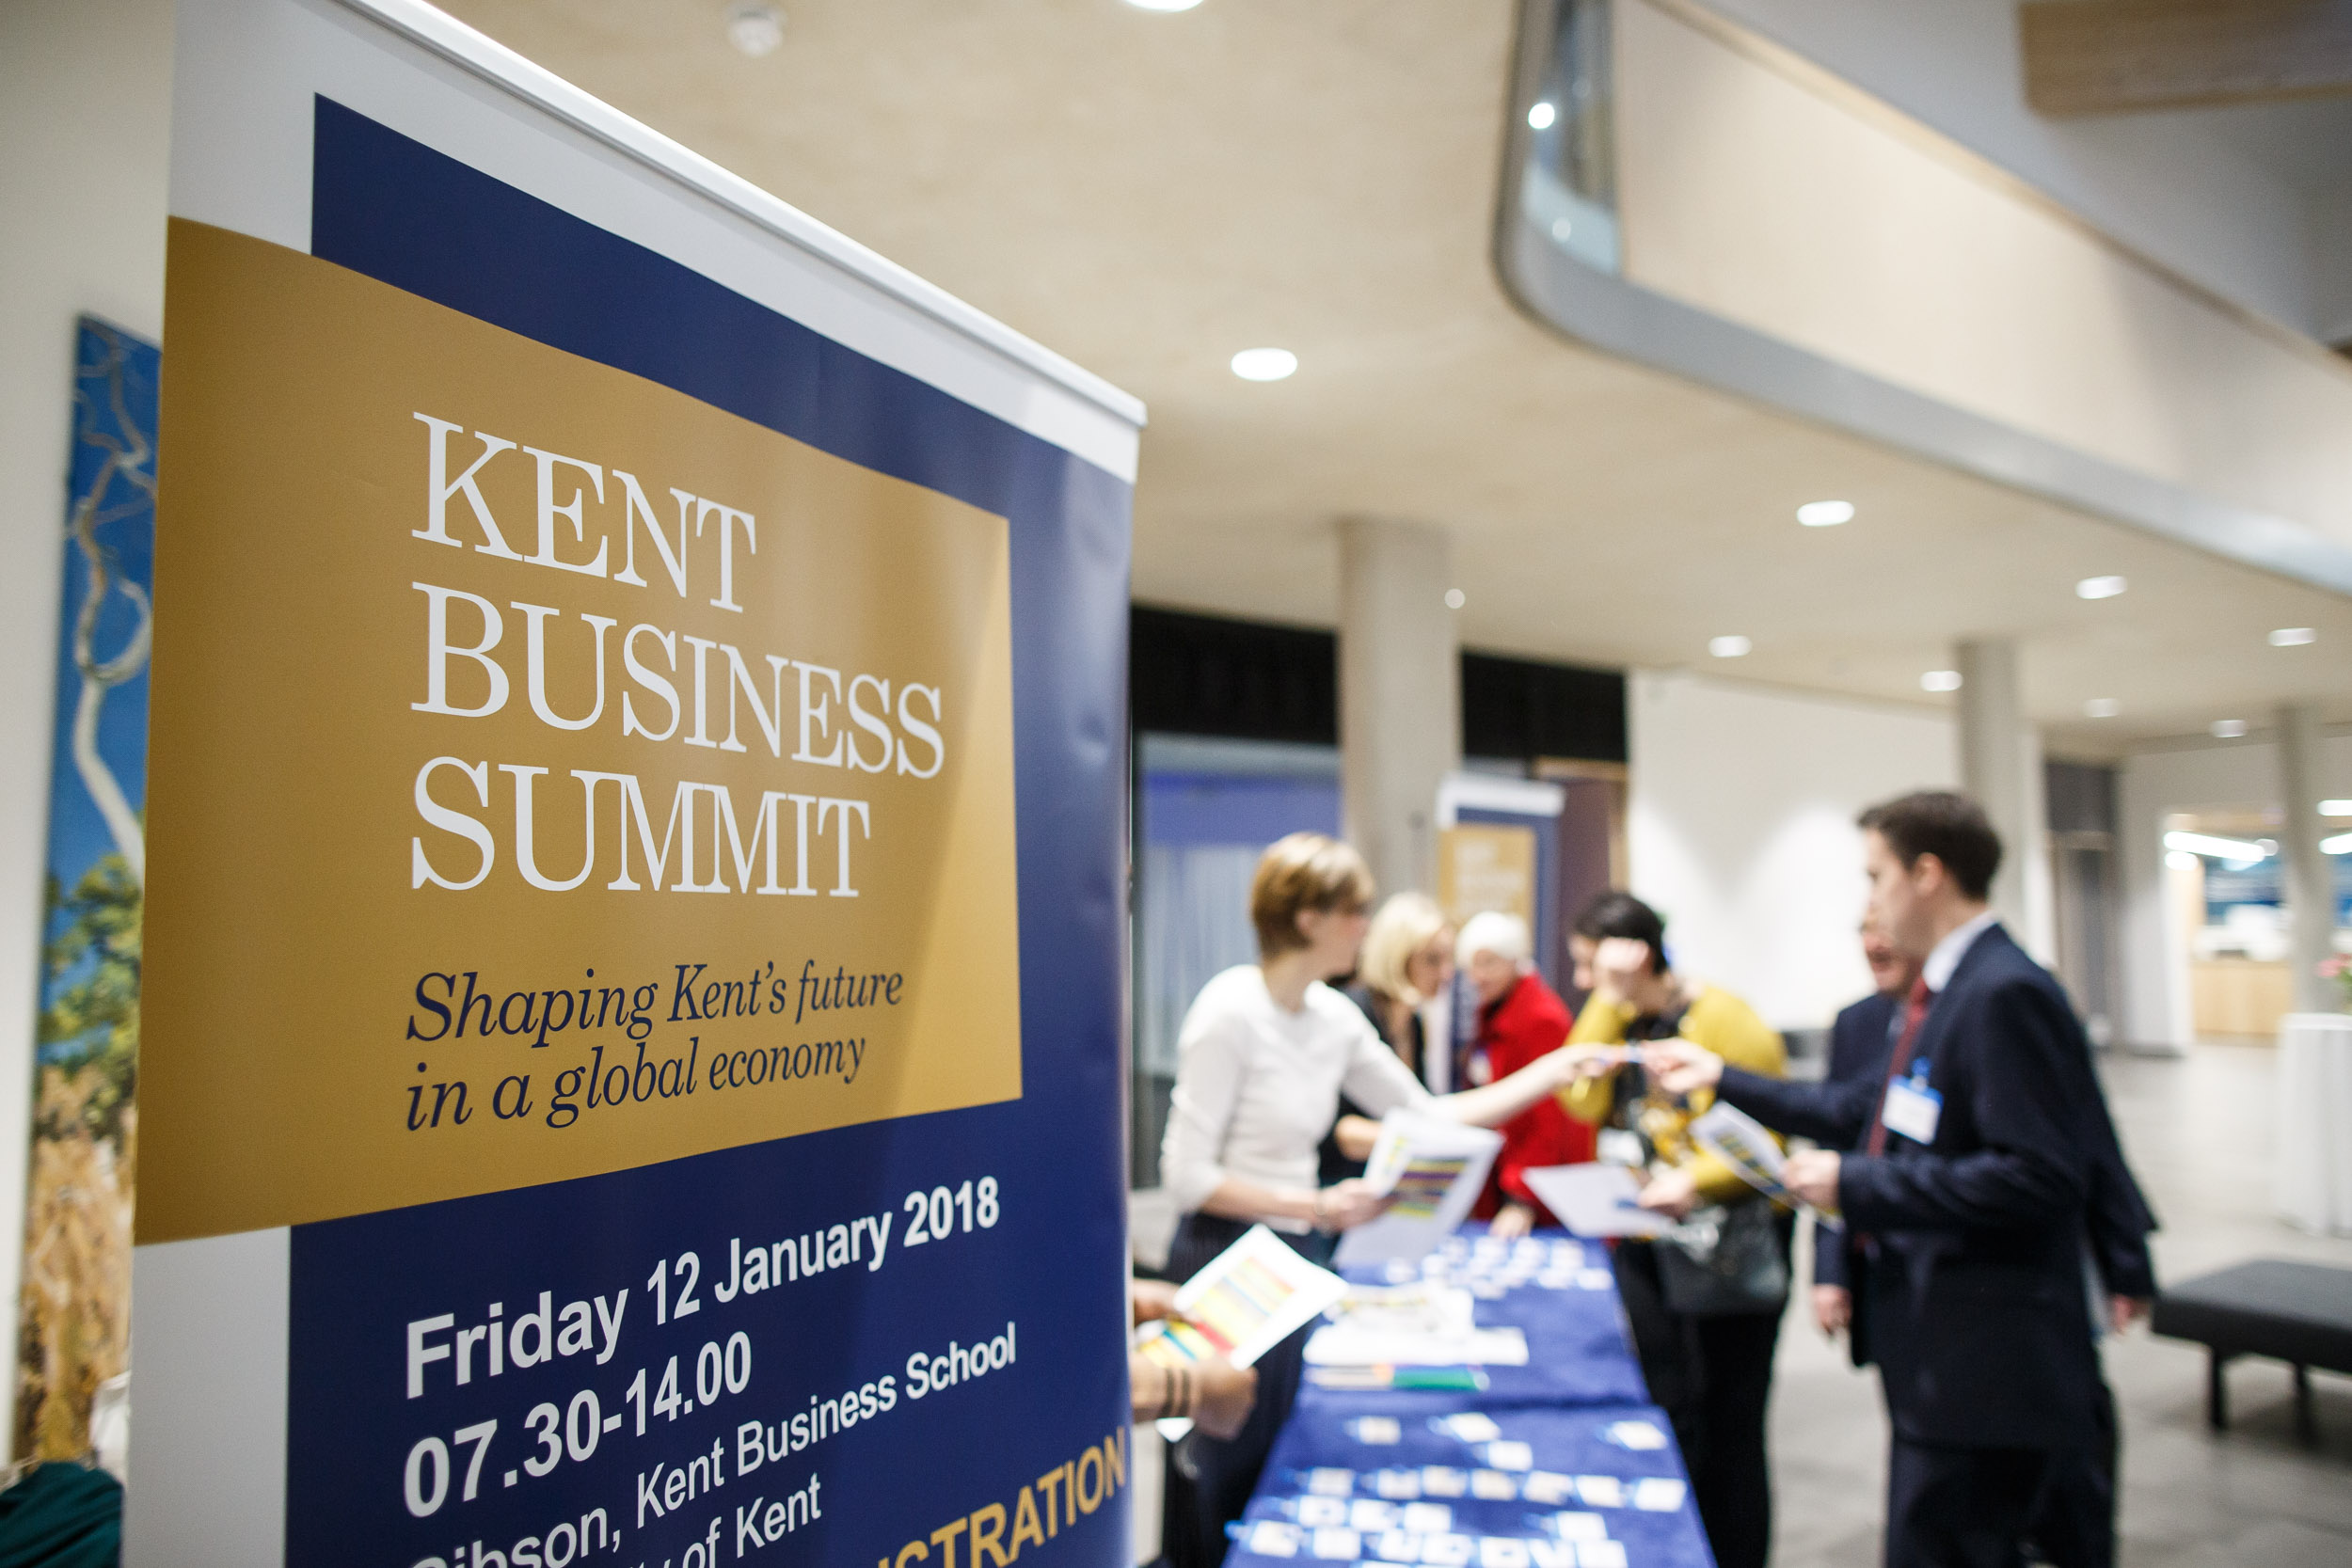 Kent Business Summit in 2018